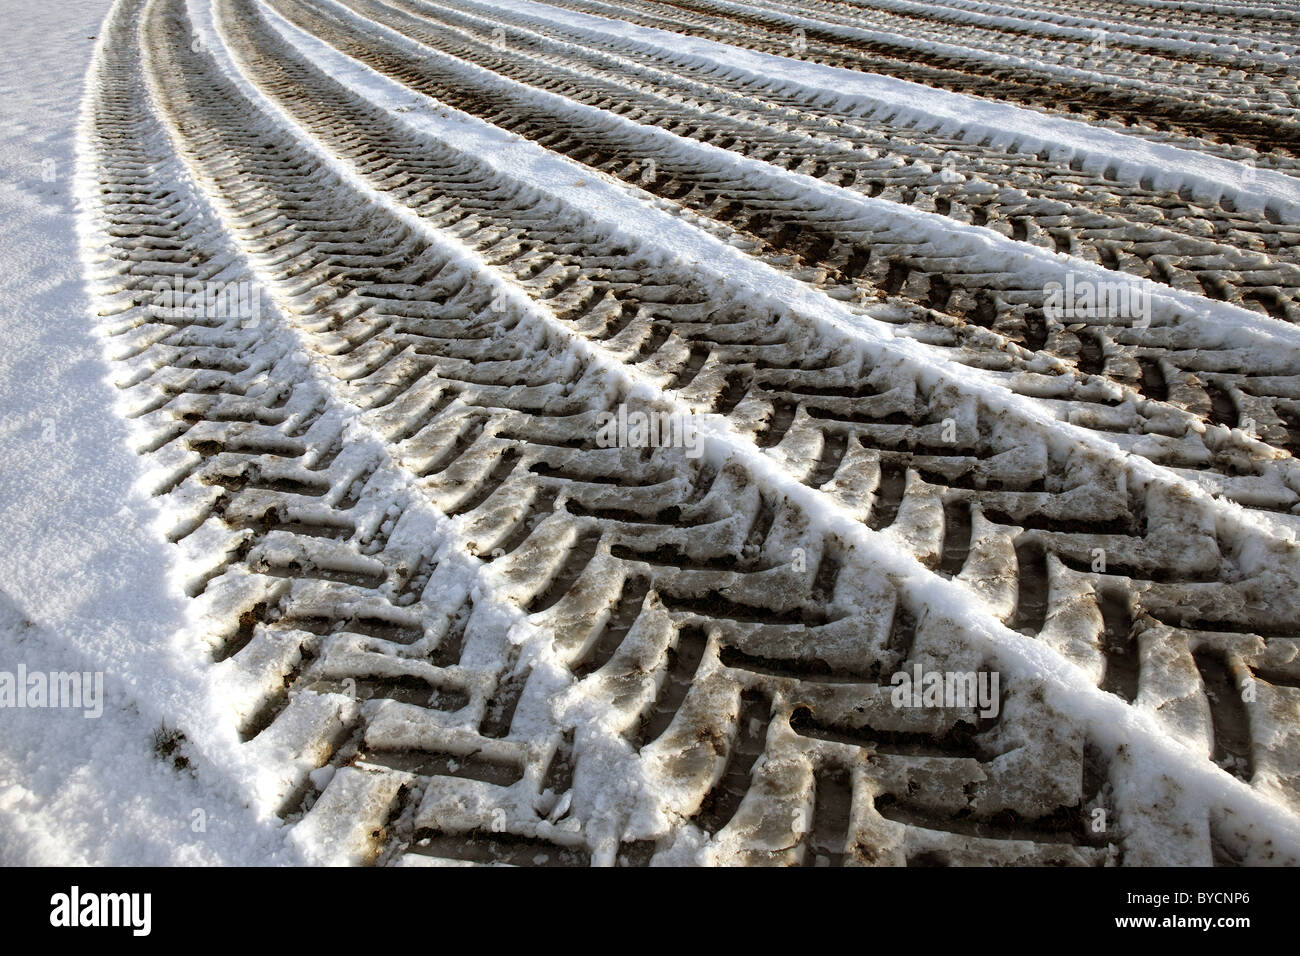 Tyre tracks in the snow - Stock Image